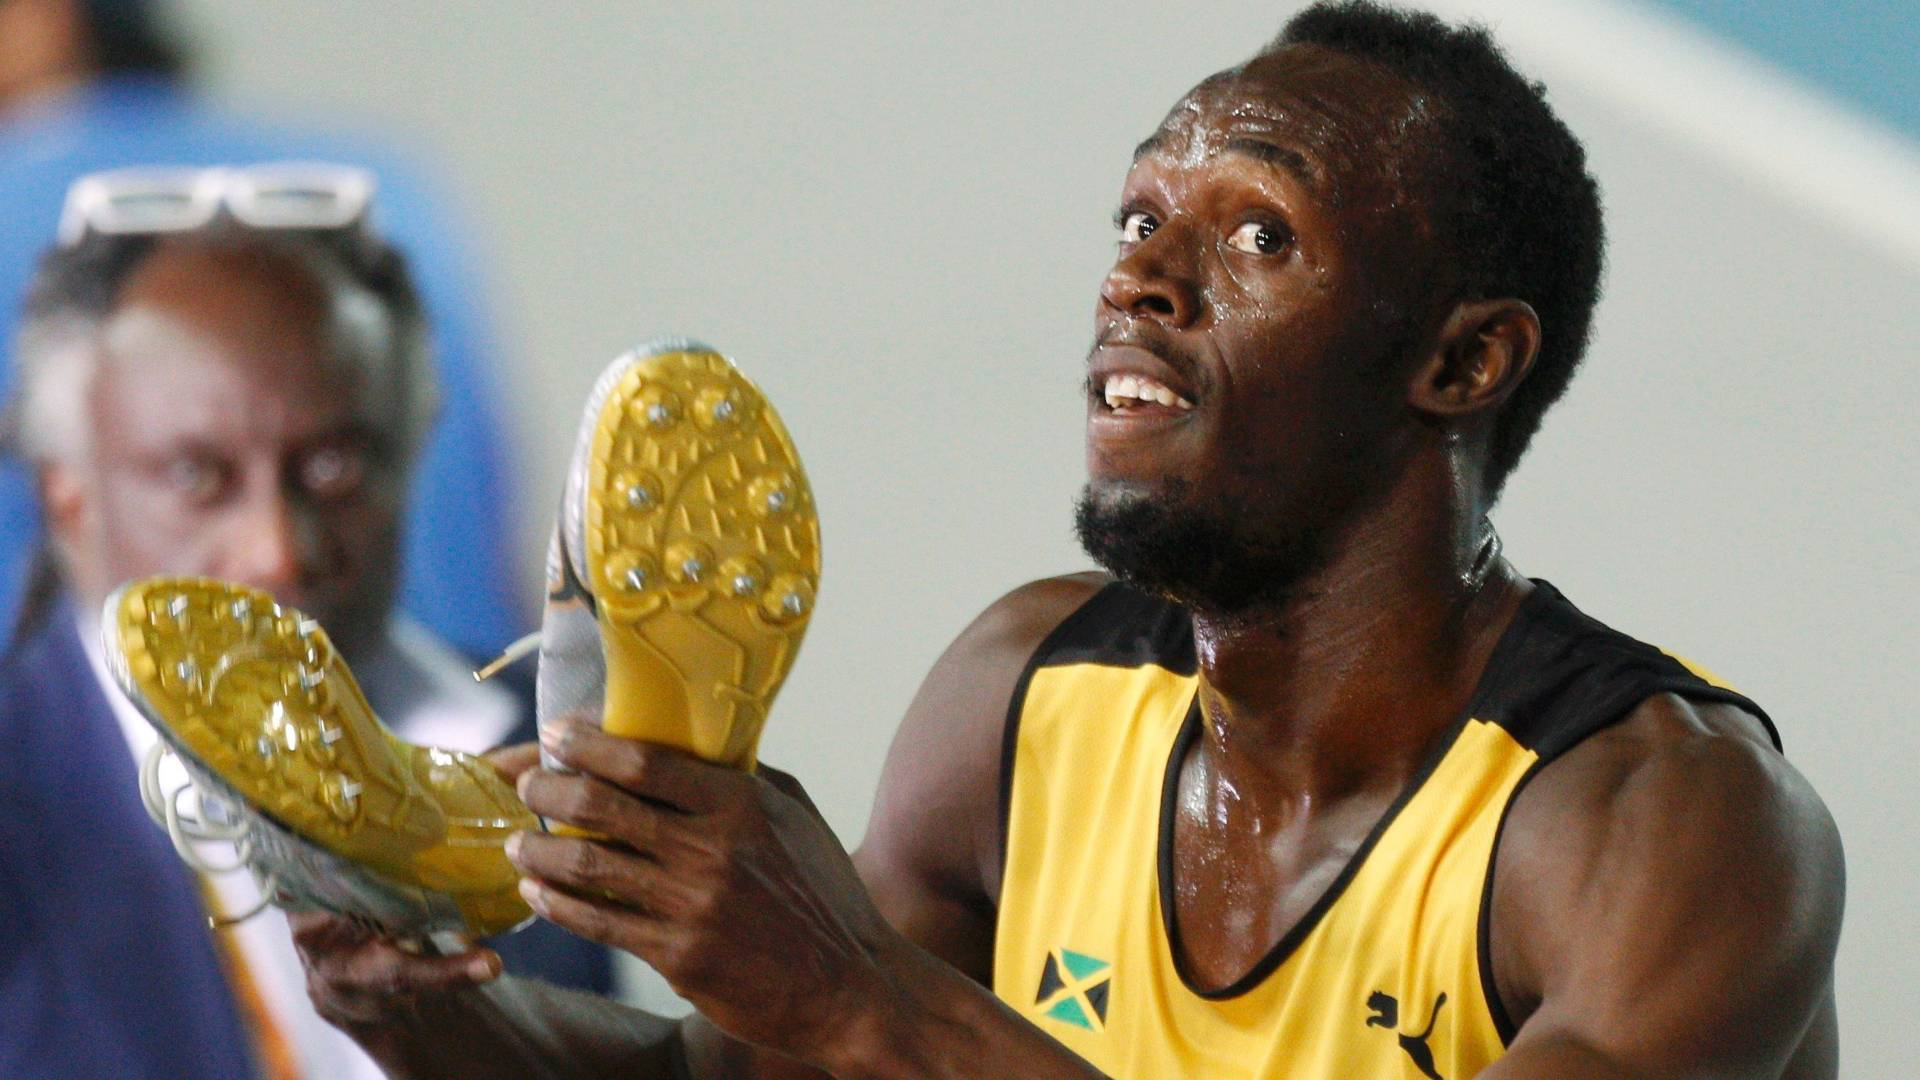 Usain Bolt exibe suas sapatilhas fazendo piada aps a semifinal dos 200m em Daegu (02/09/2011)